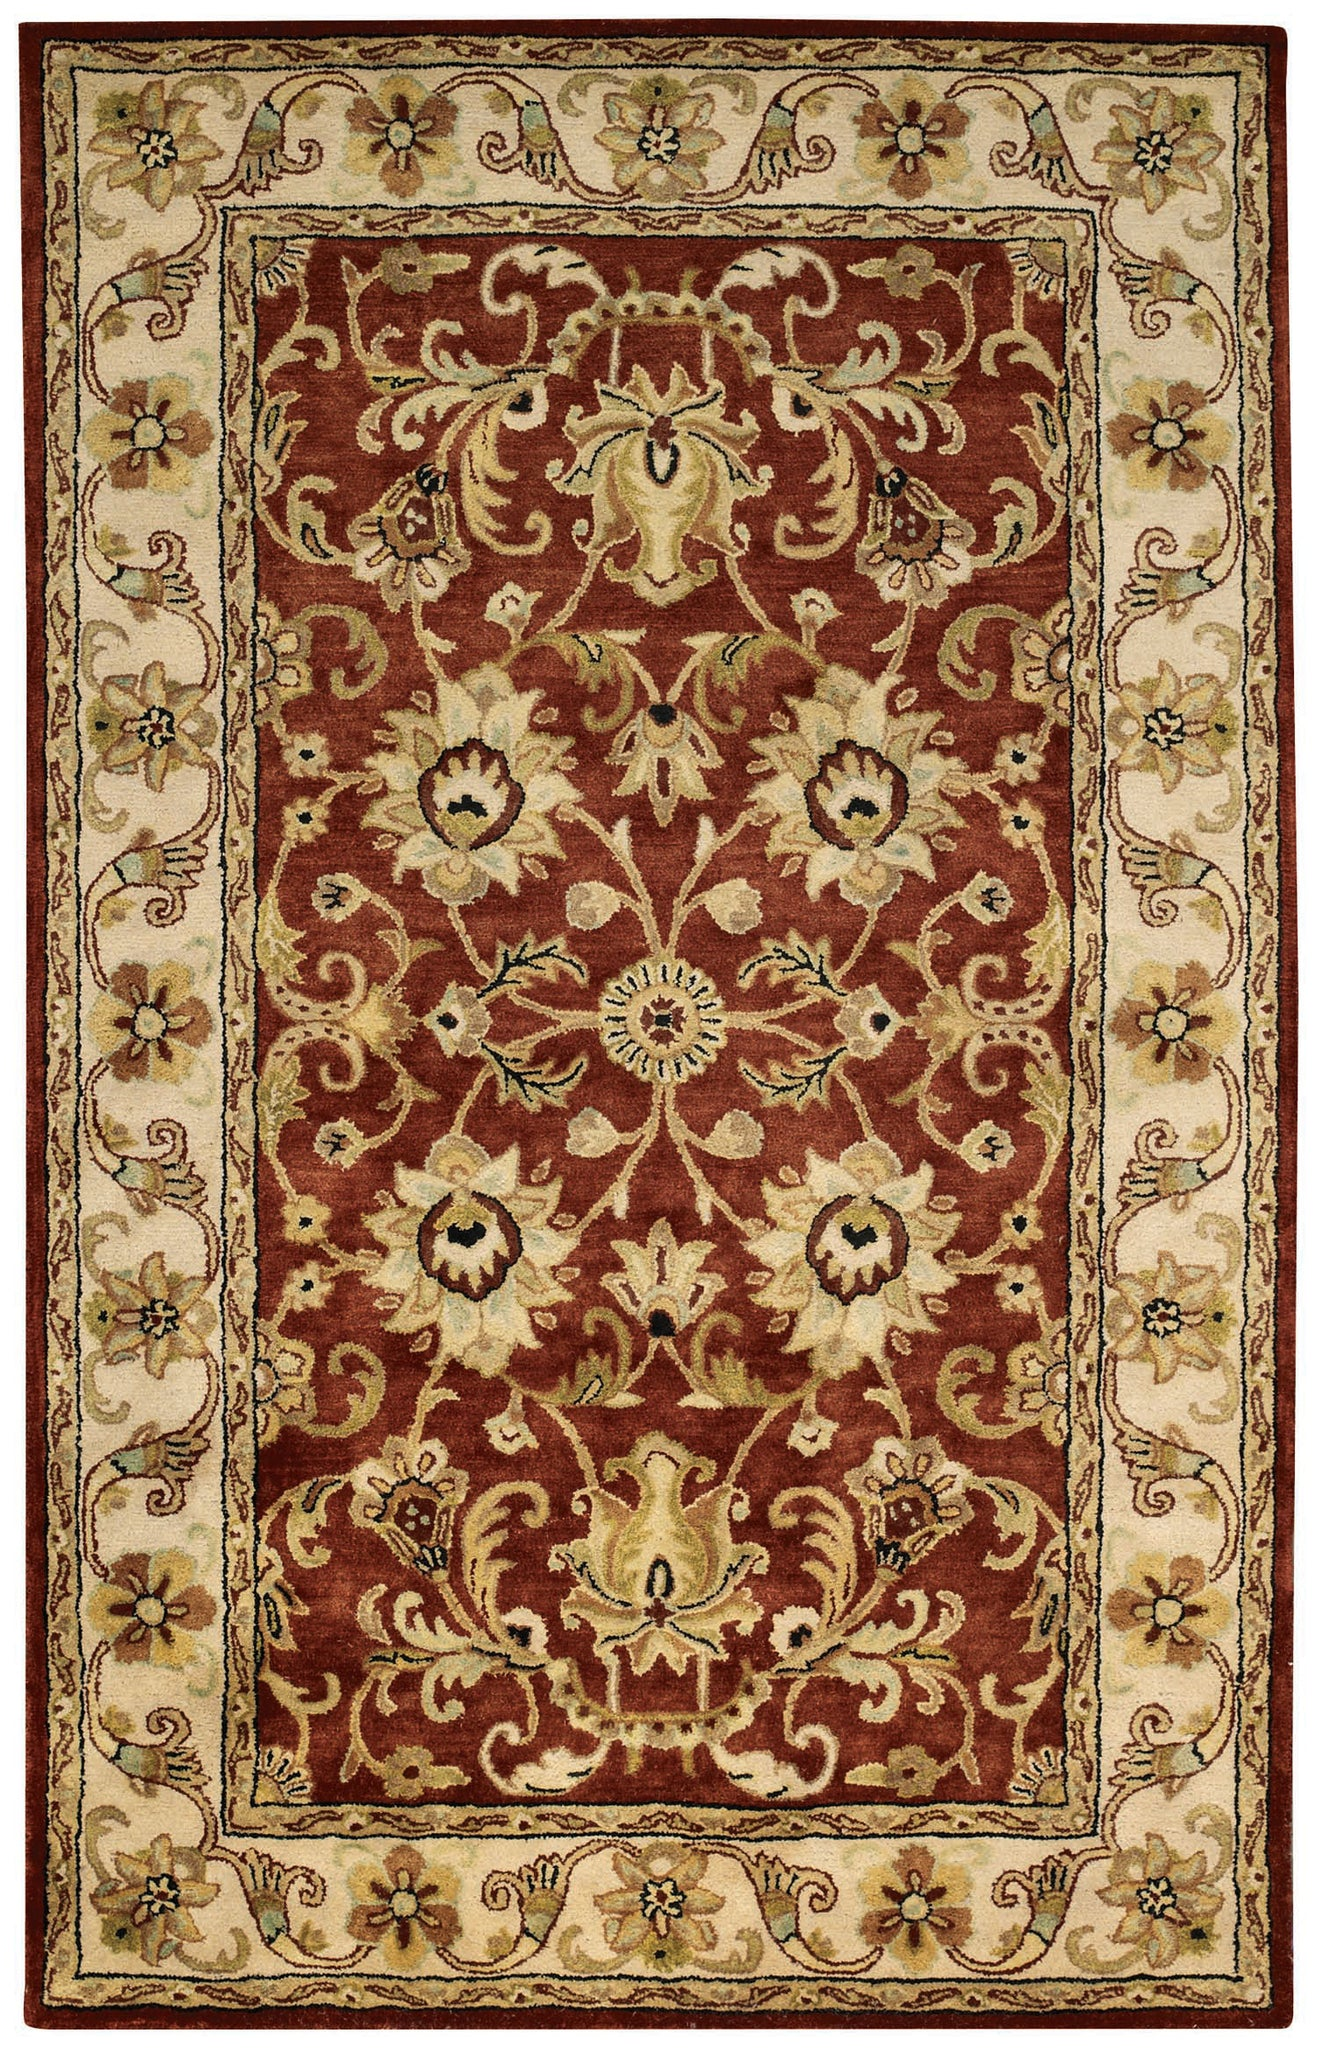 Capel Guilded 9205 Red 560 Area Rug main image